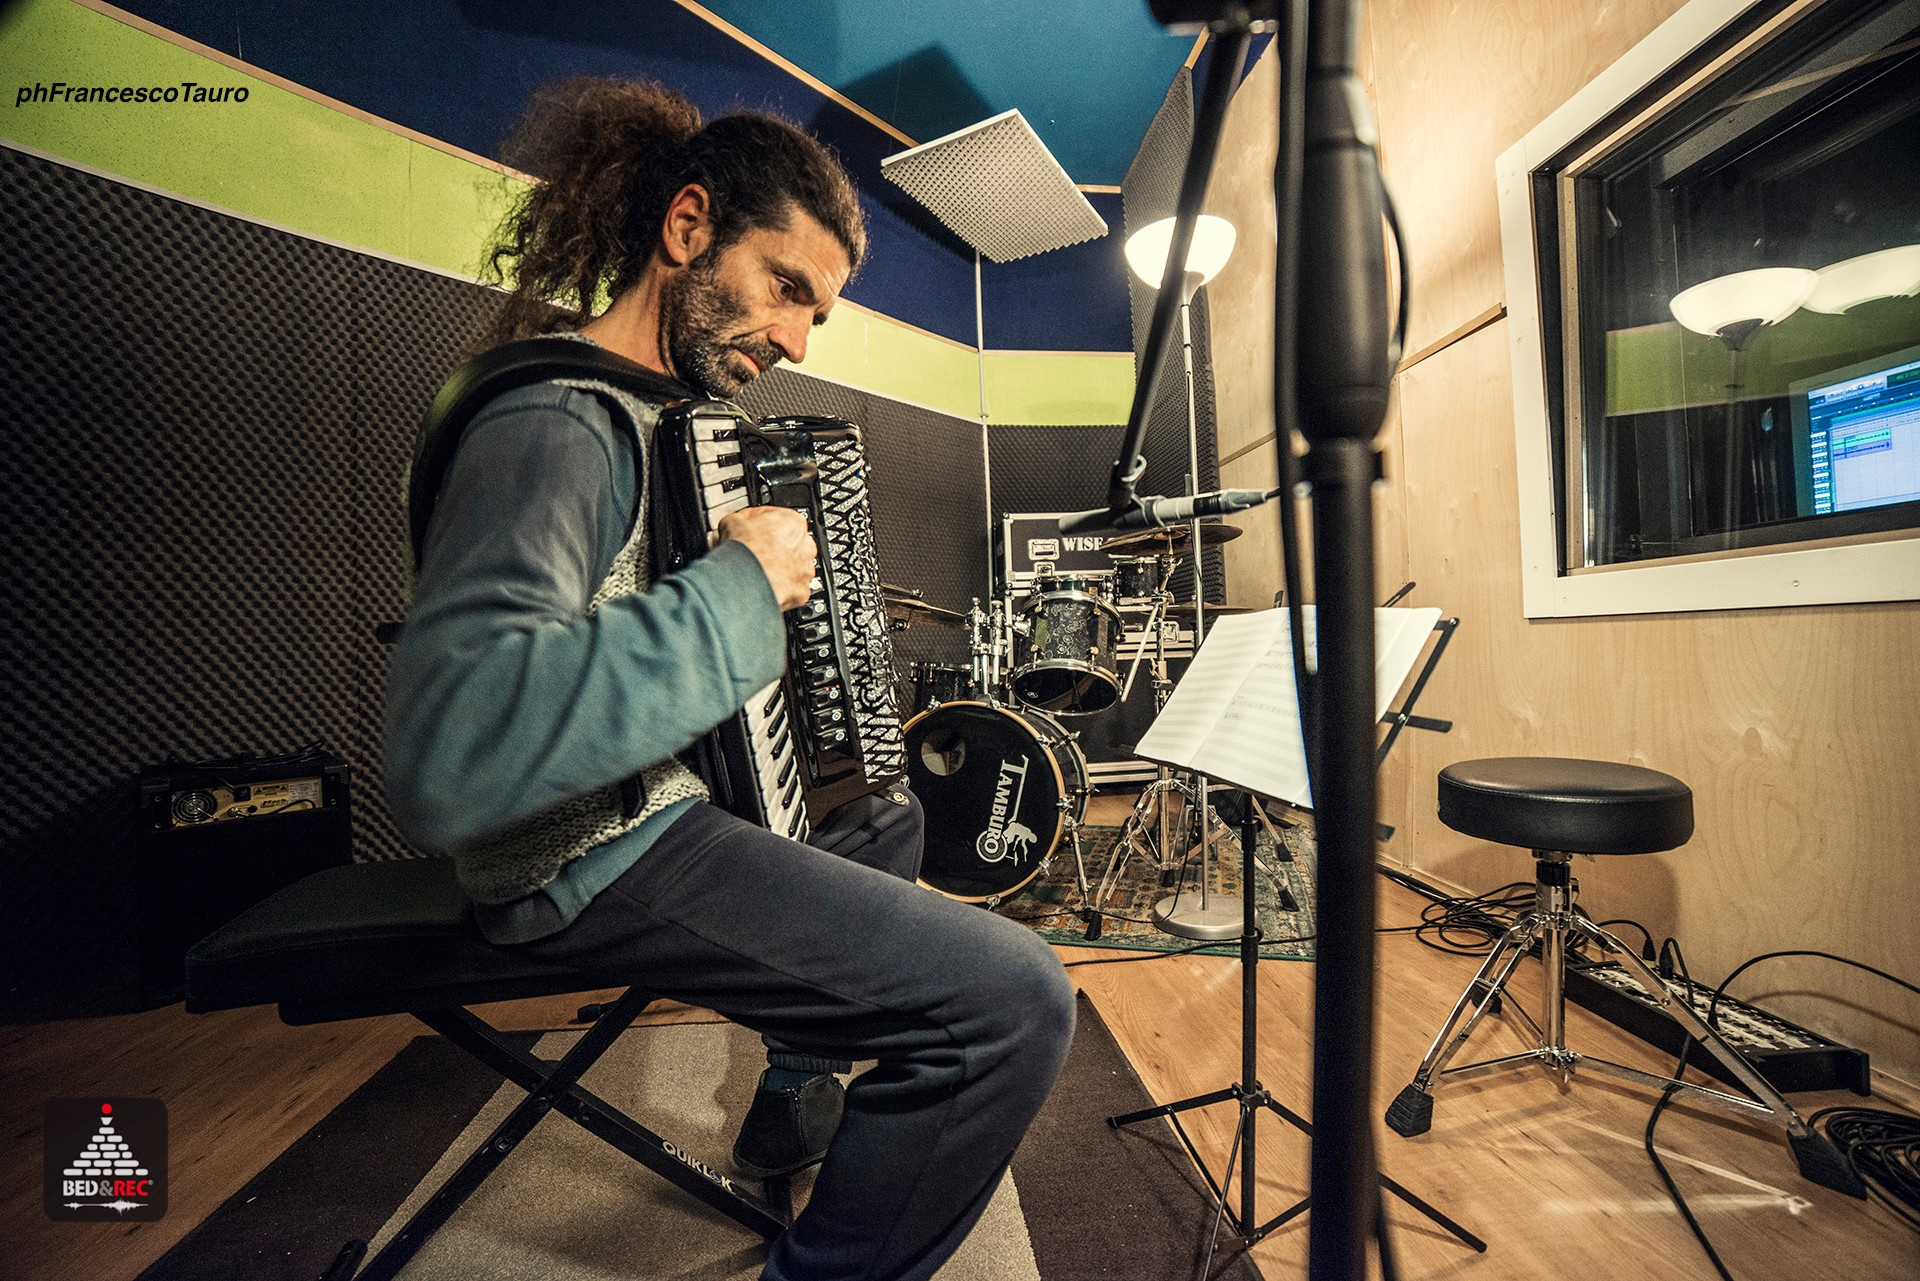 Suonitineranti - Studio Session - Bed&Rec - Officina Musicale